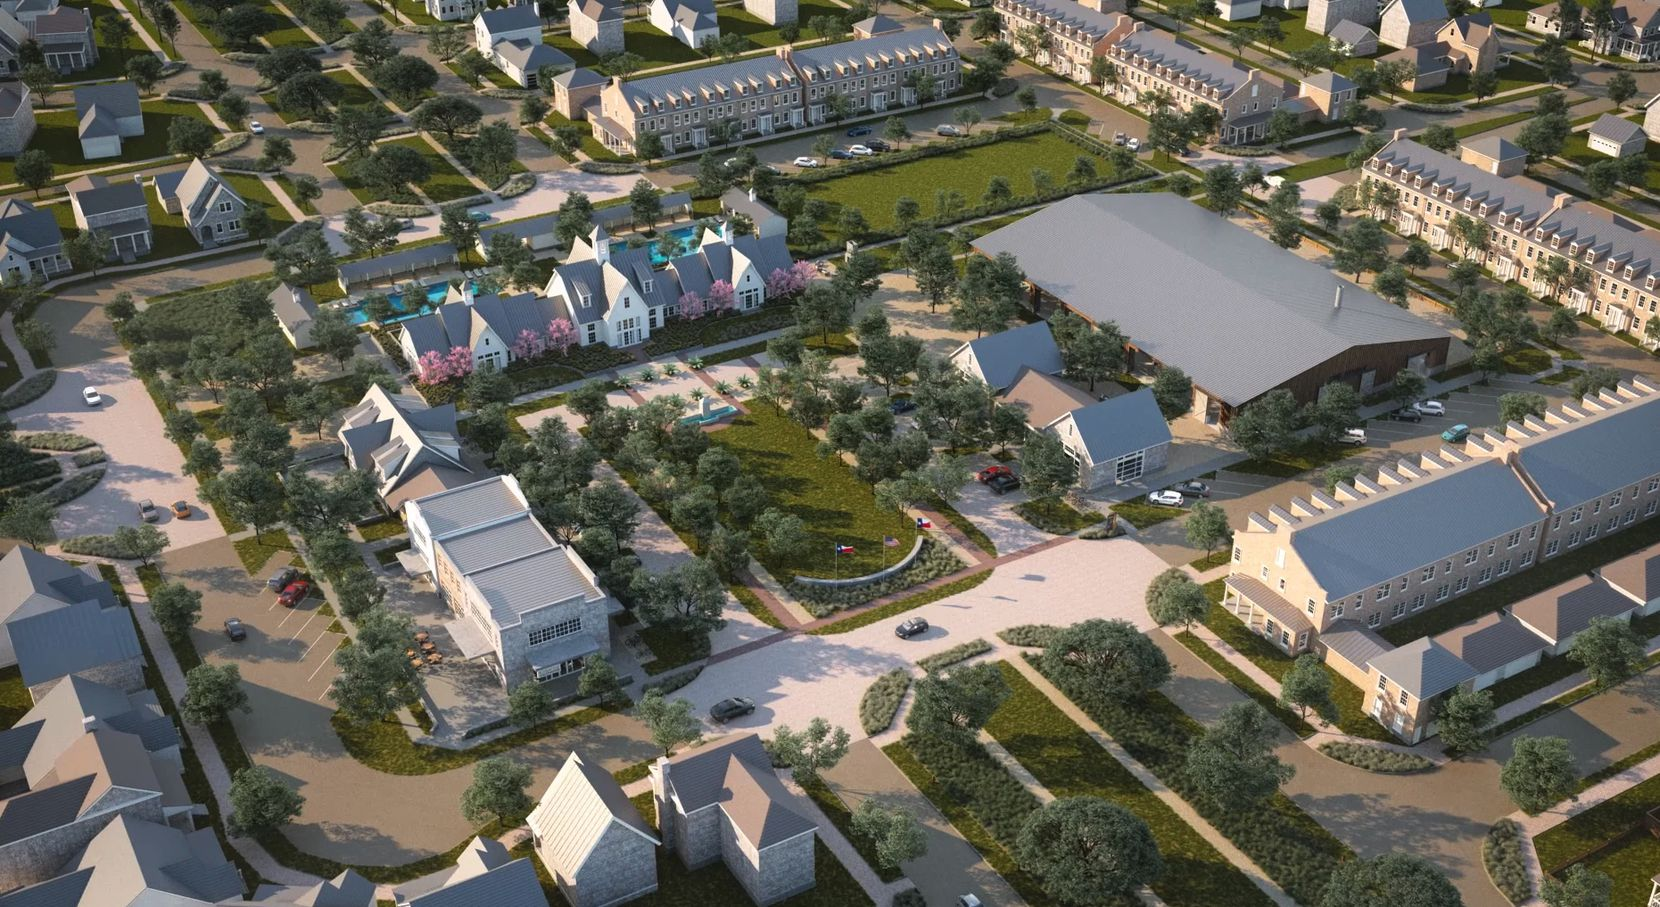 Hillwood Communities' new Pecan Square community in Northlake will have more than 3,000 homes.